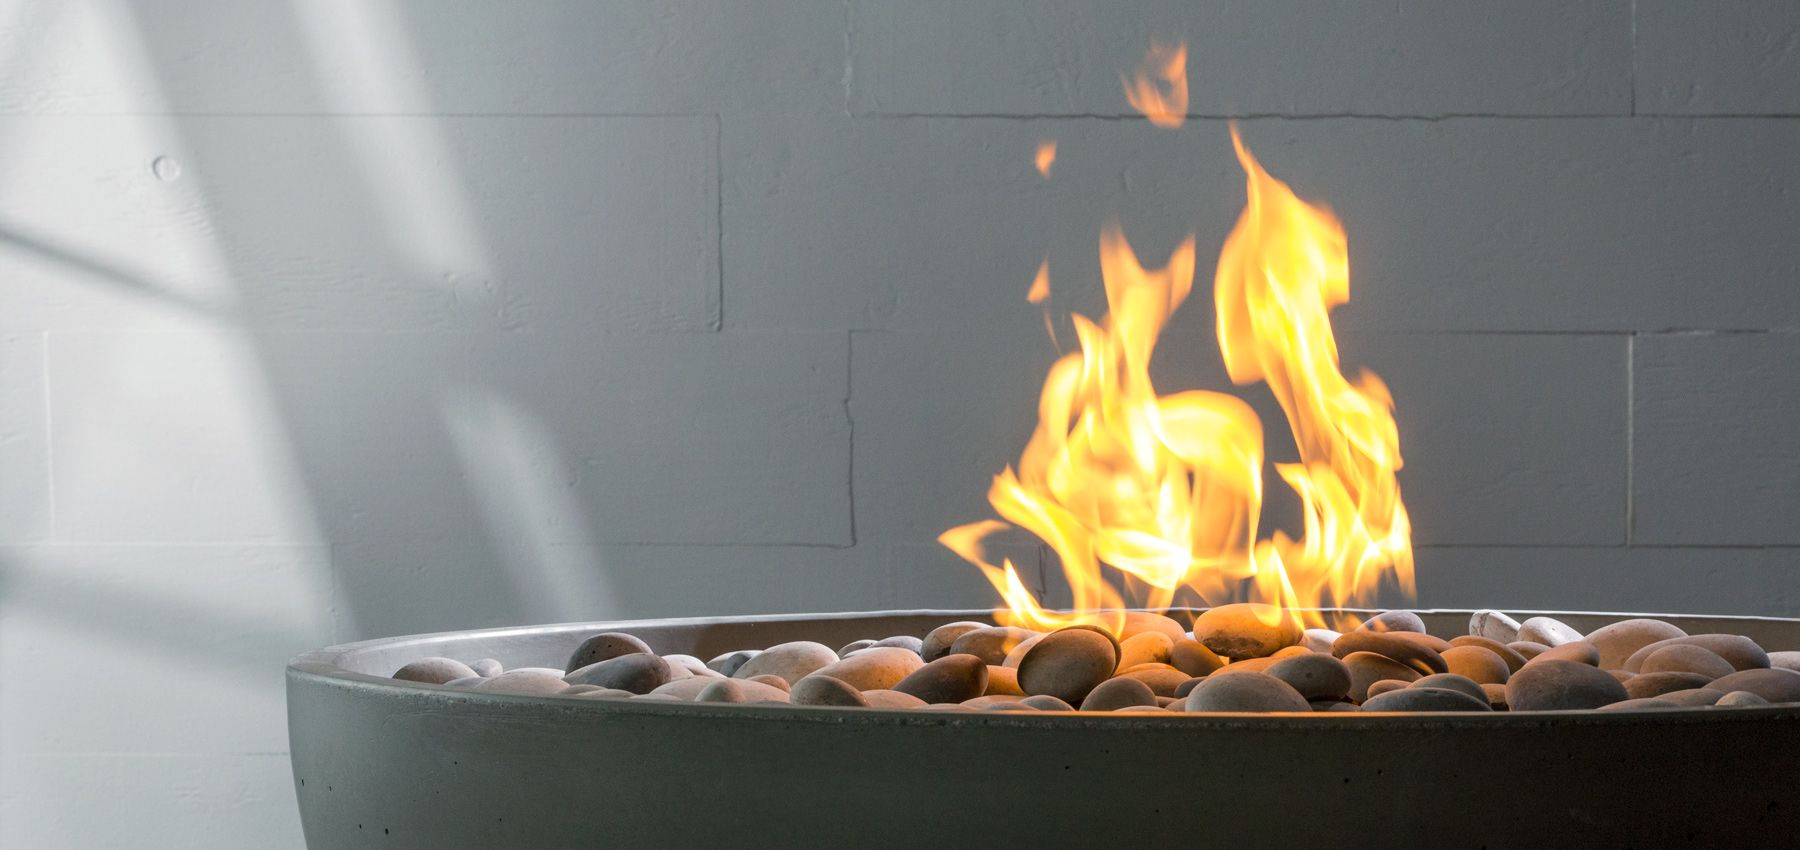 Fire pits solus decor gusola residence pinterest water